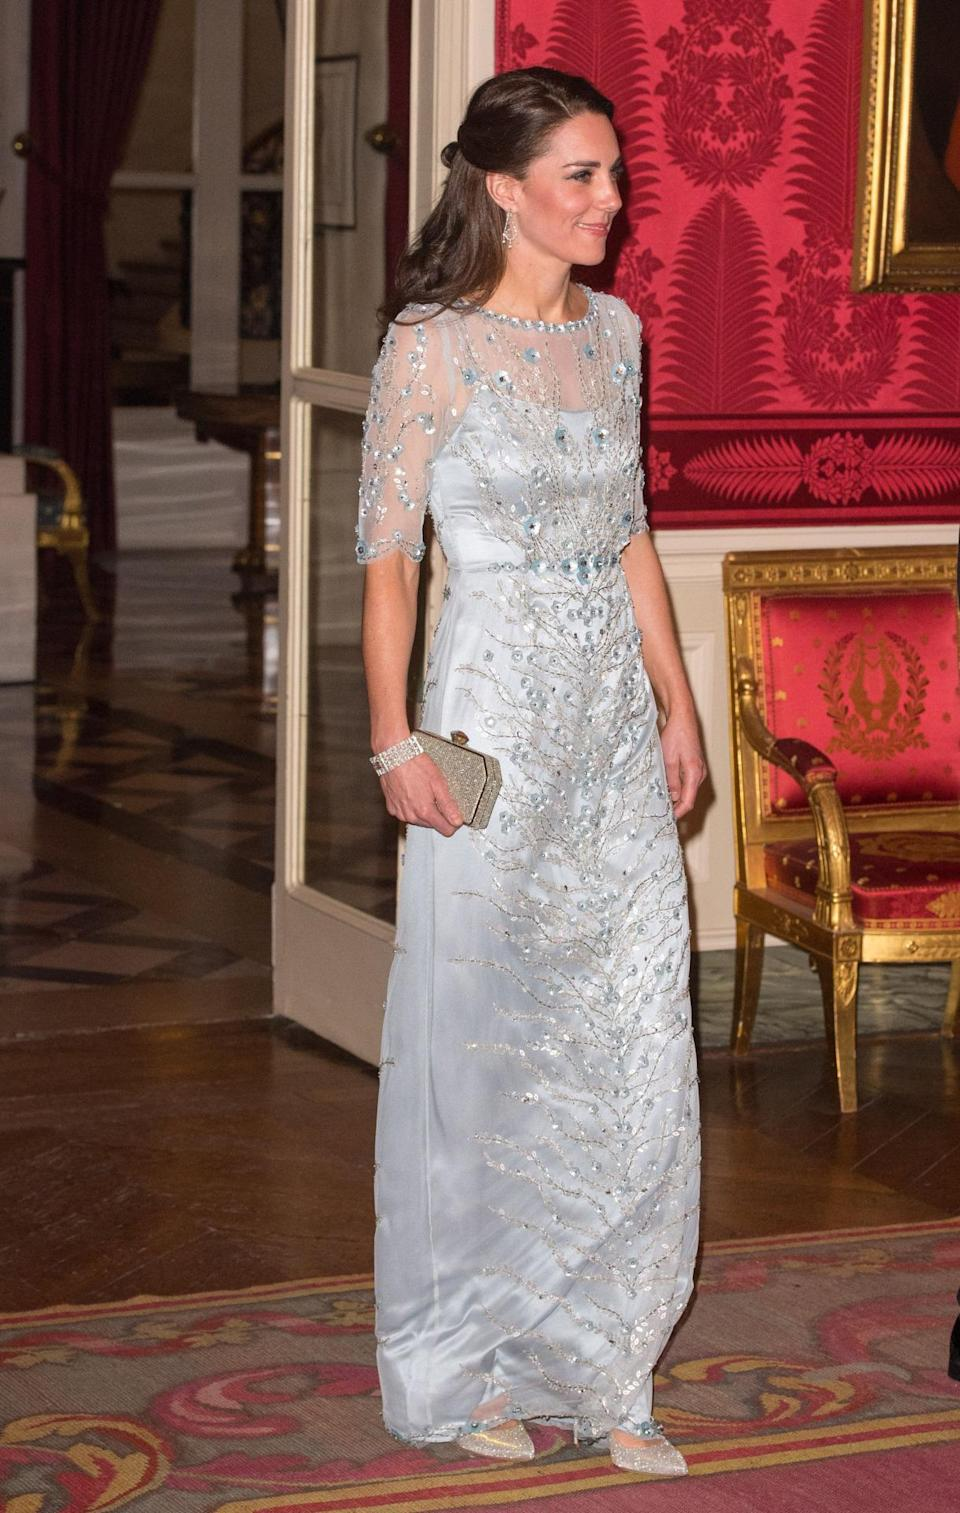 <p>Black tie dinners are always Kate's time to shine. For such an occasion in Paris, the Duchess was spotted in a gorgeous bespoke Jenny Packham gown. The silvery design featured sheer sleeves and beaded floral embellishing. A glittering clutch (also by Jenny Packham) was carried with sparkly Oscar de la Renta pumps topping off the princess-worthy ensemble. </p><p><i>[Photo: PA]</i> </p>